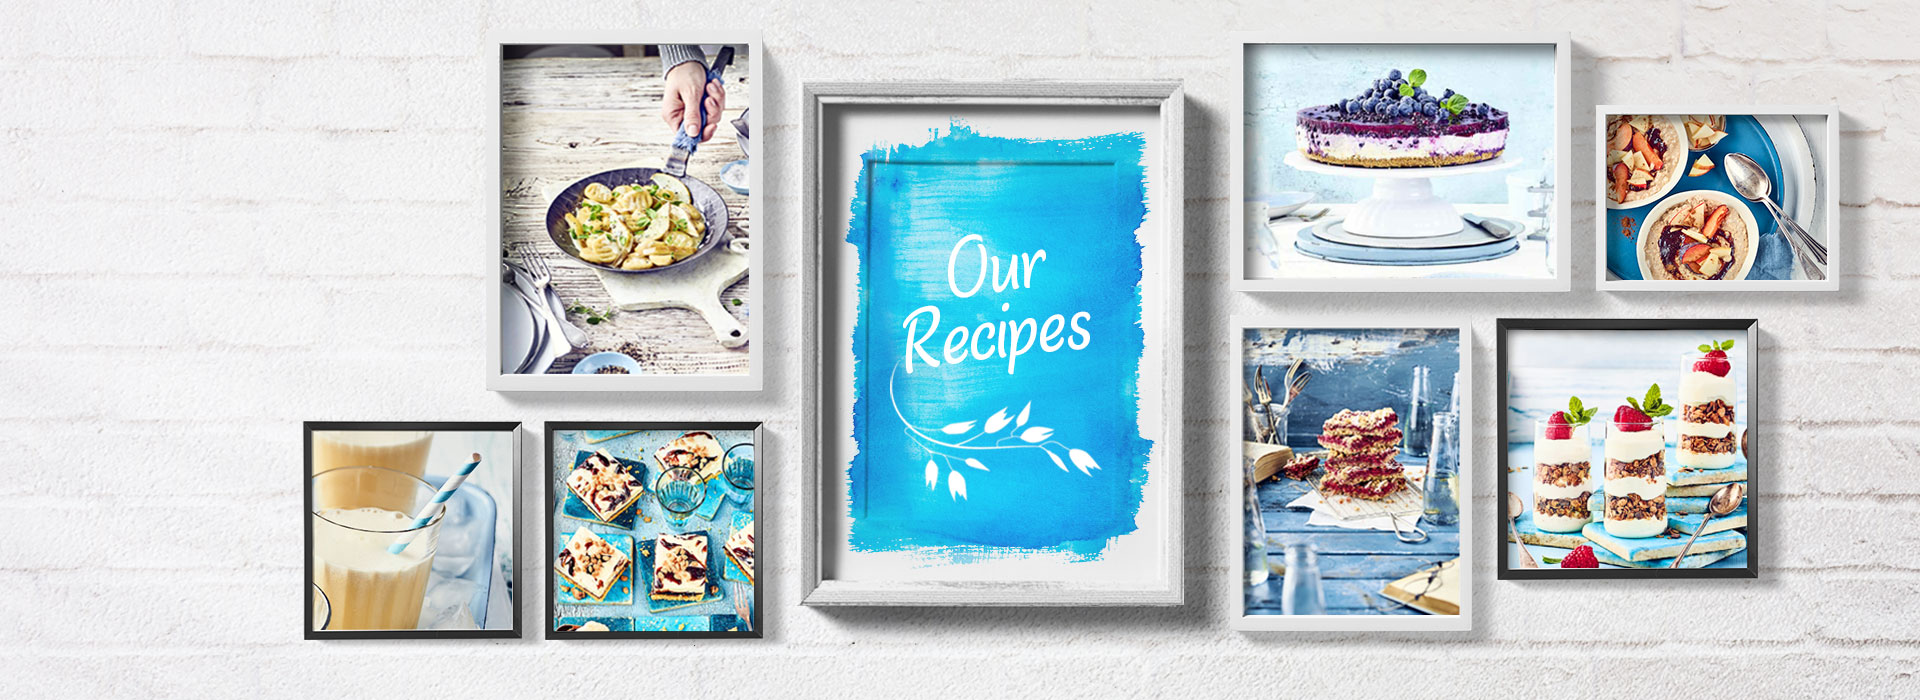 Koelln pictures showing different recipes with oats